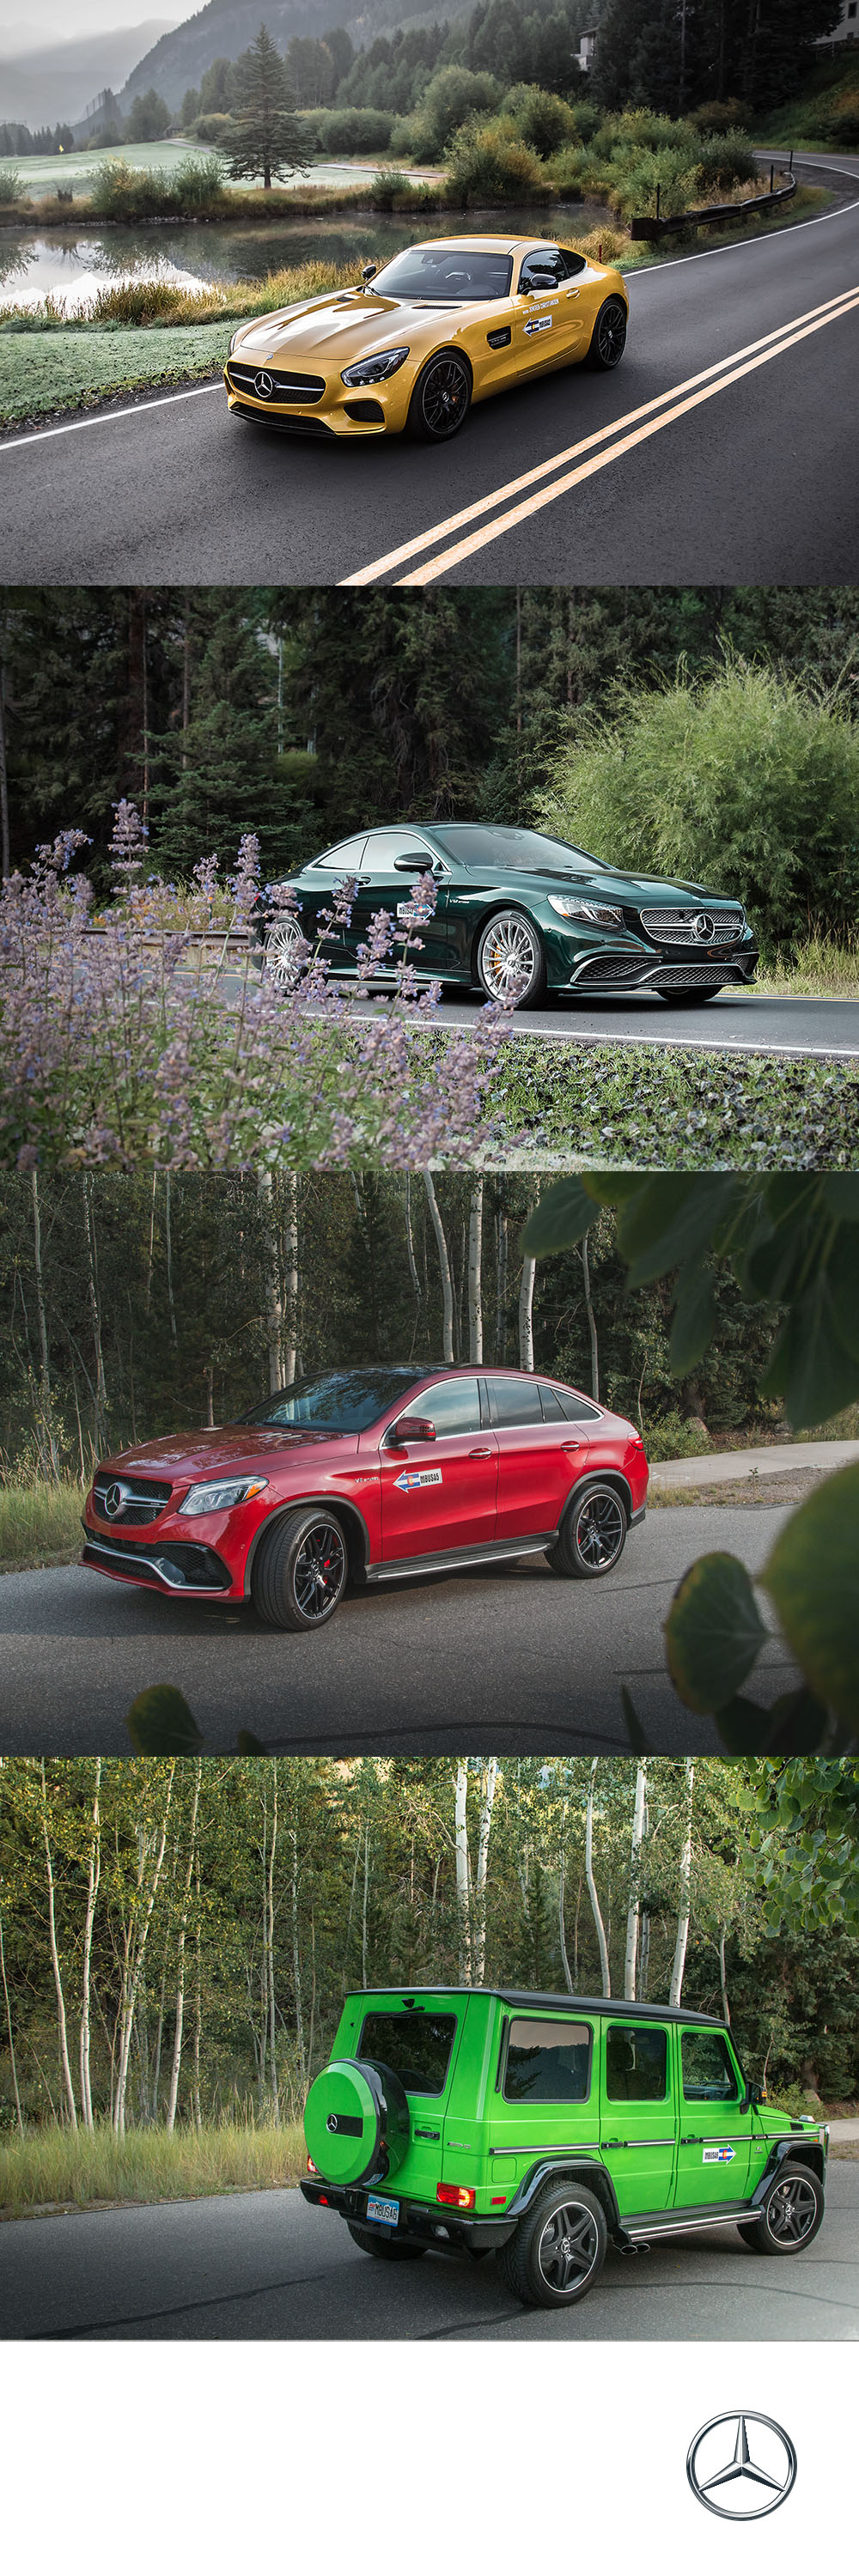 September 14 marked the 20th anniversary of Mercedes Benz sponsoring